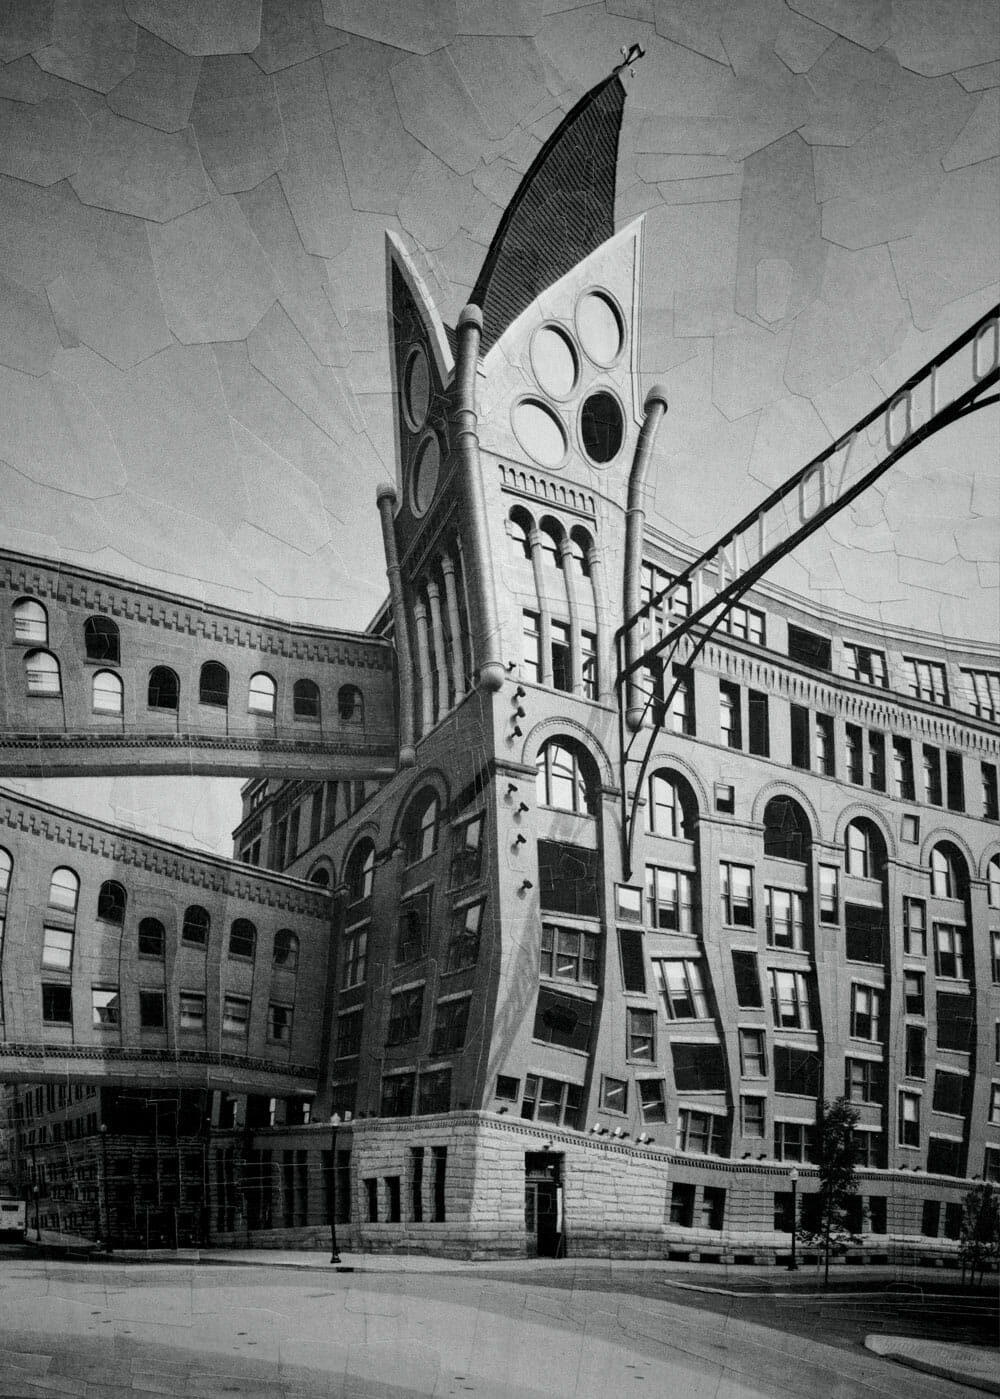 A surrealist greyscale rendering of an industrial building, with mismatched windows placed haphazardly all over. Two skyways connect it to another, unseen building.